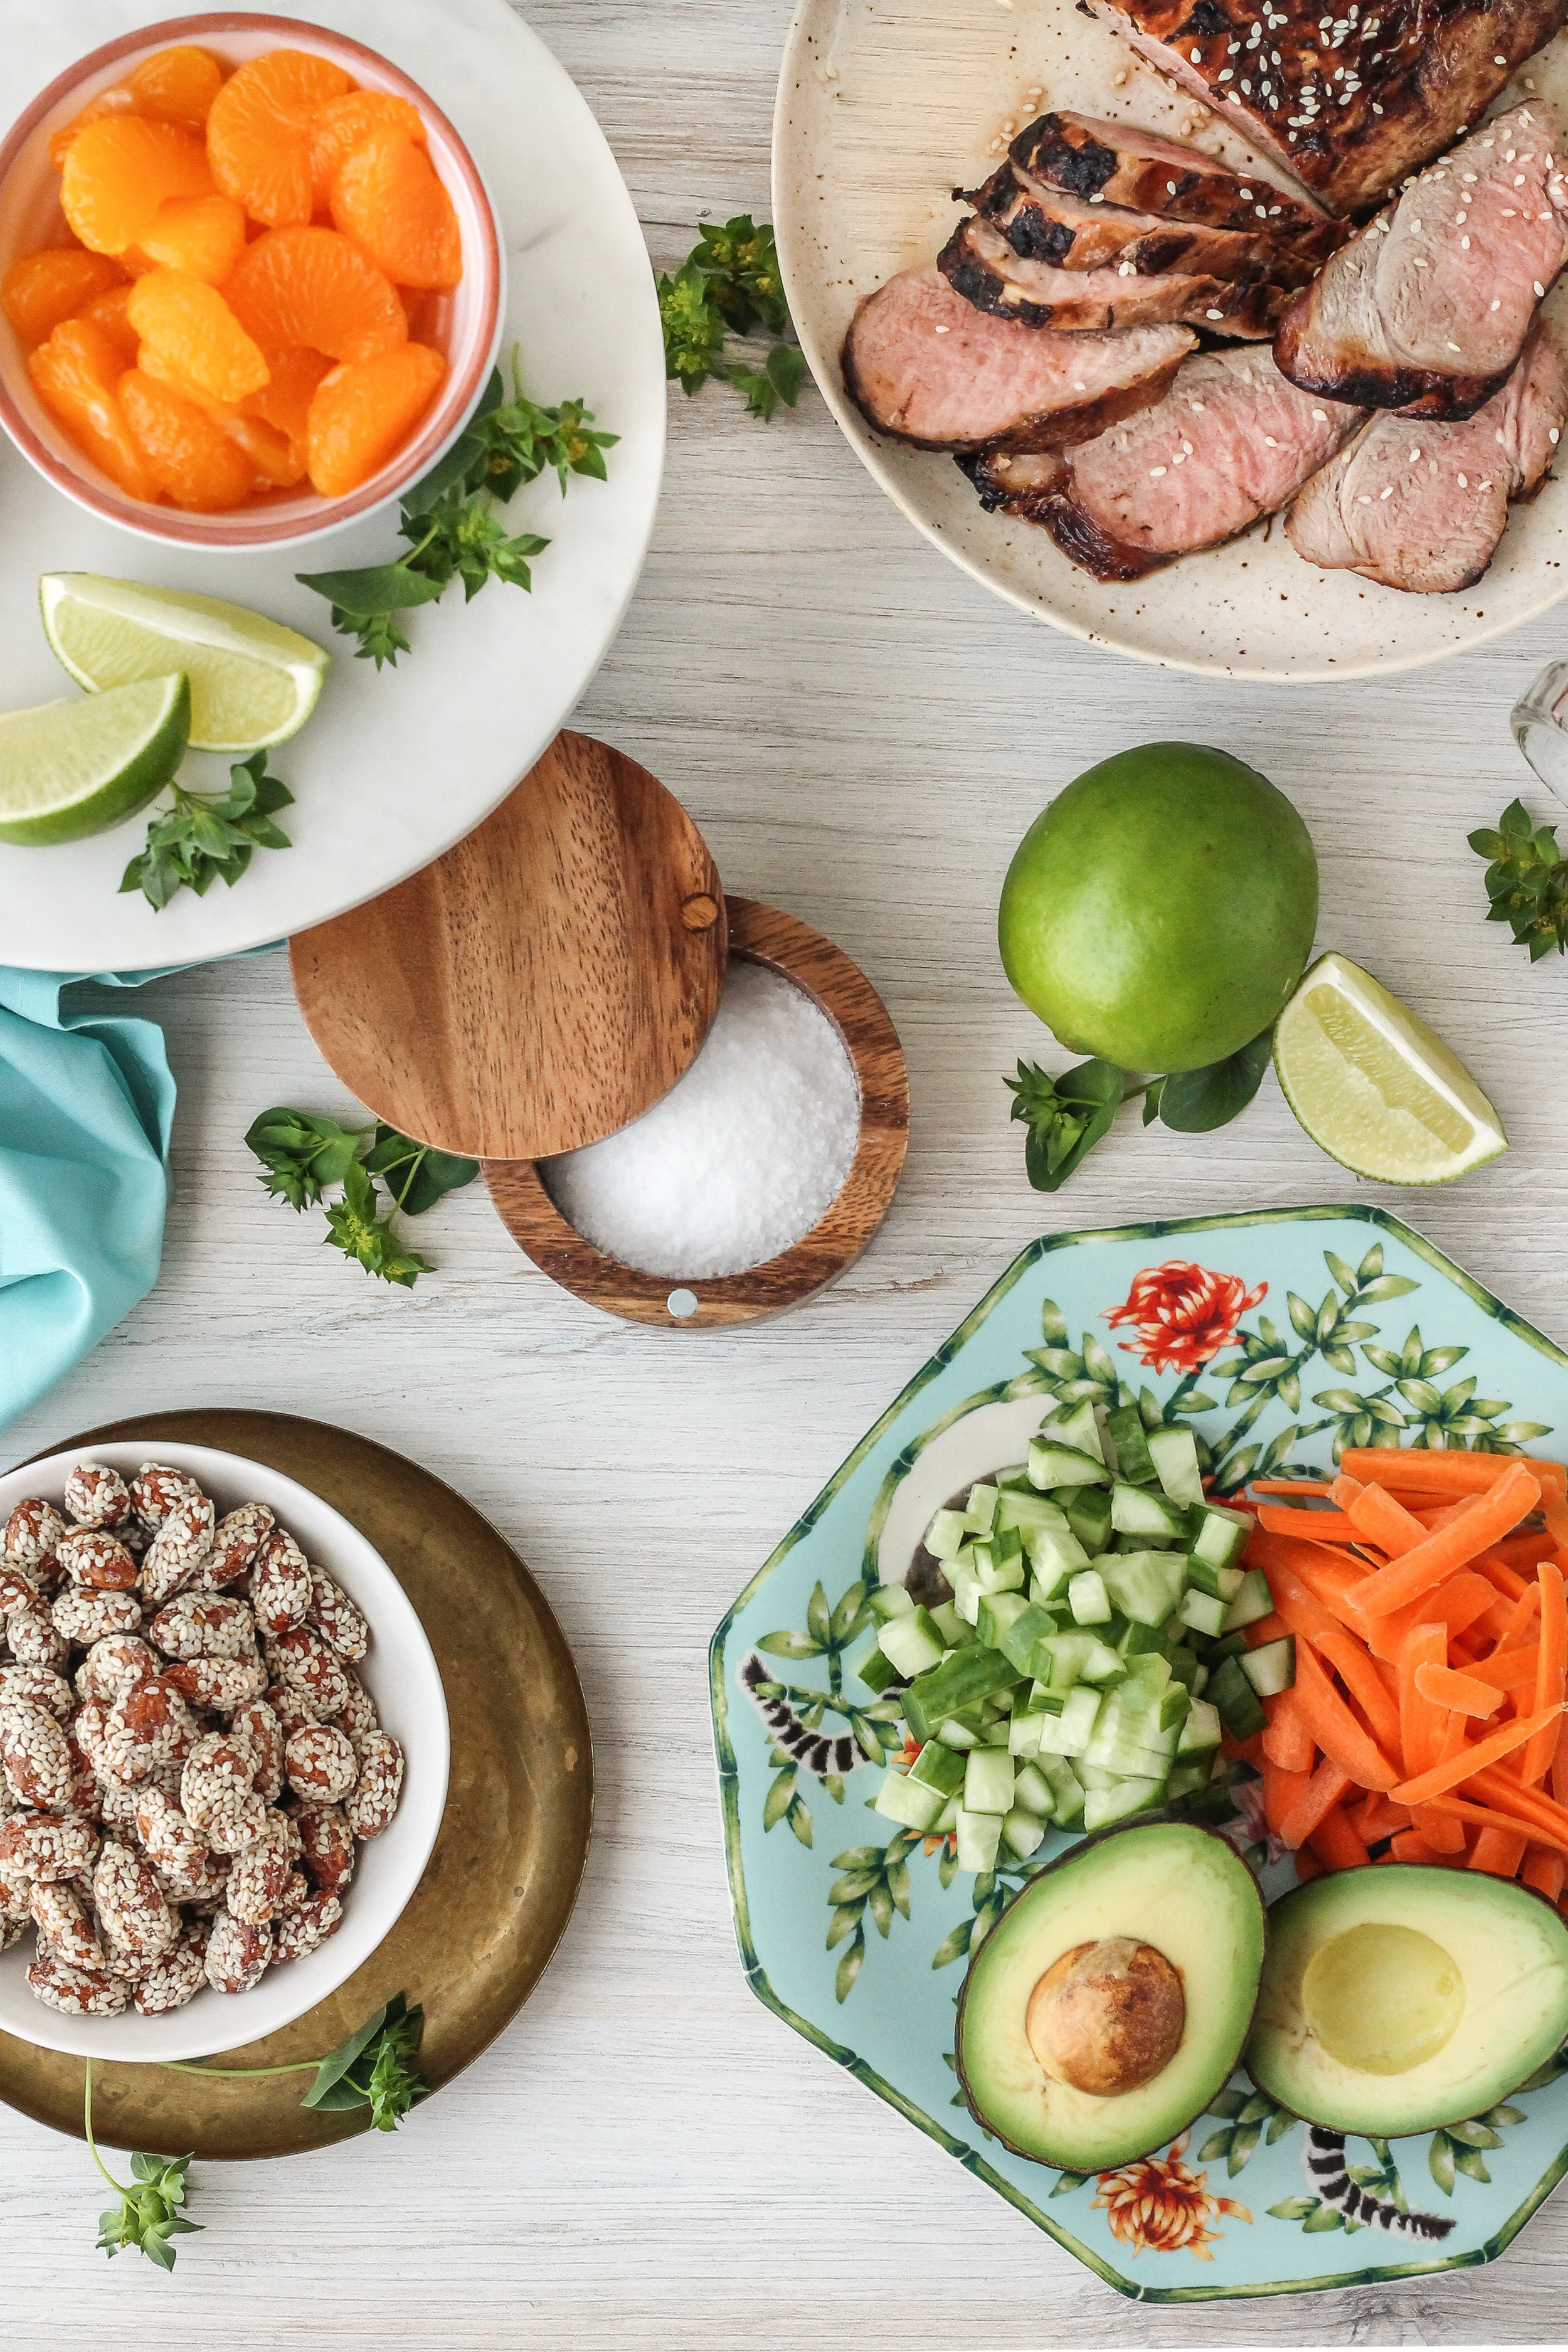 These sesame-soy pork loin salads are the fresh and easy weeknight dinner we all crave!  Find this recipe and so many more on www.pedanticfoodie.com!